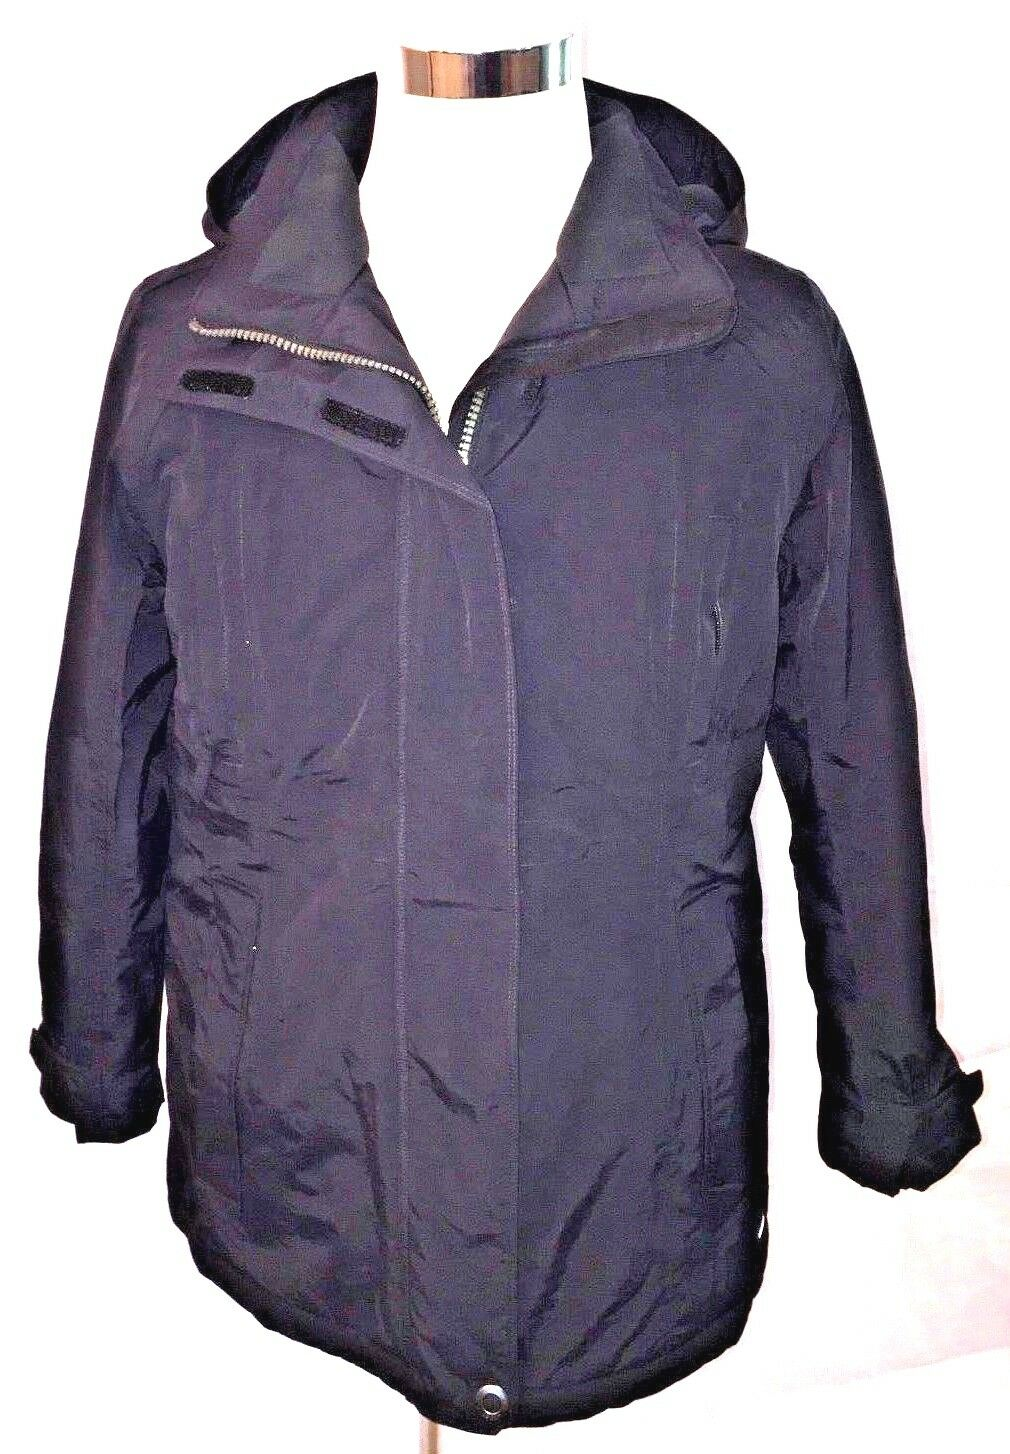 Lands' End Womens Squall Insulated Parka New without Tags Choose Size PXS,M P,XS